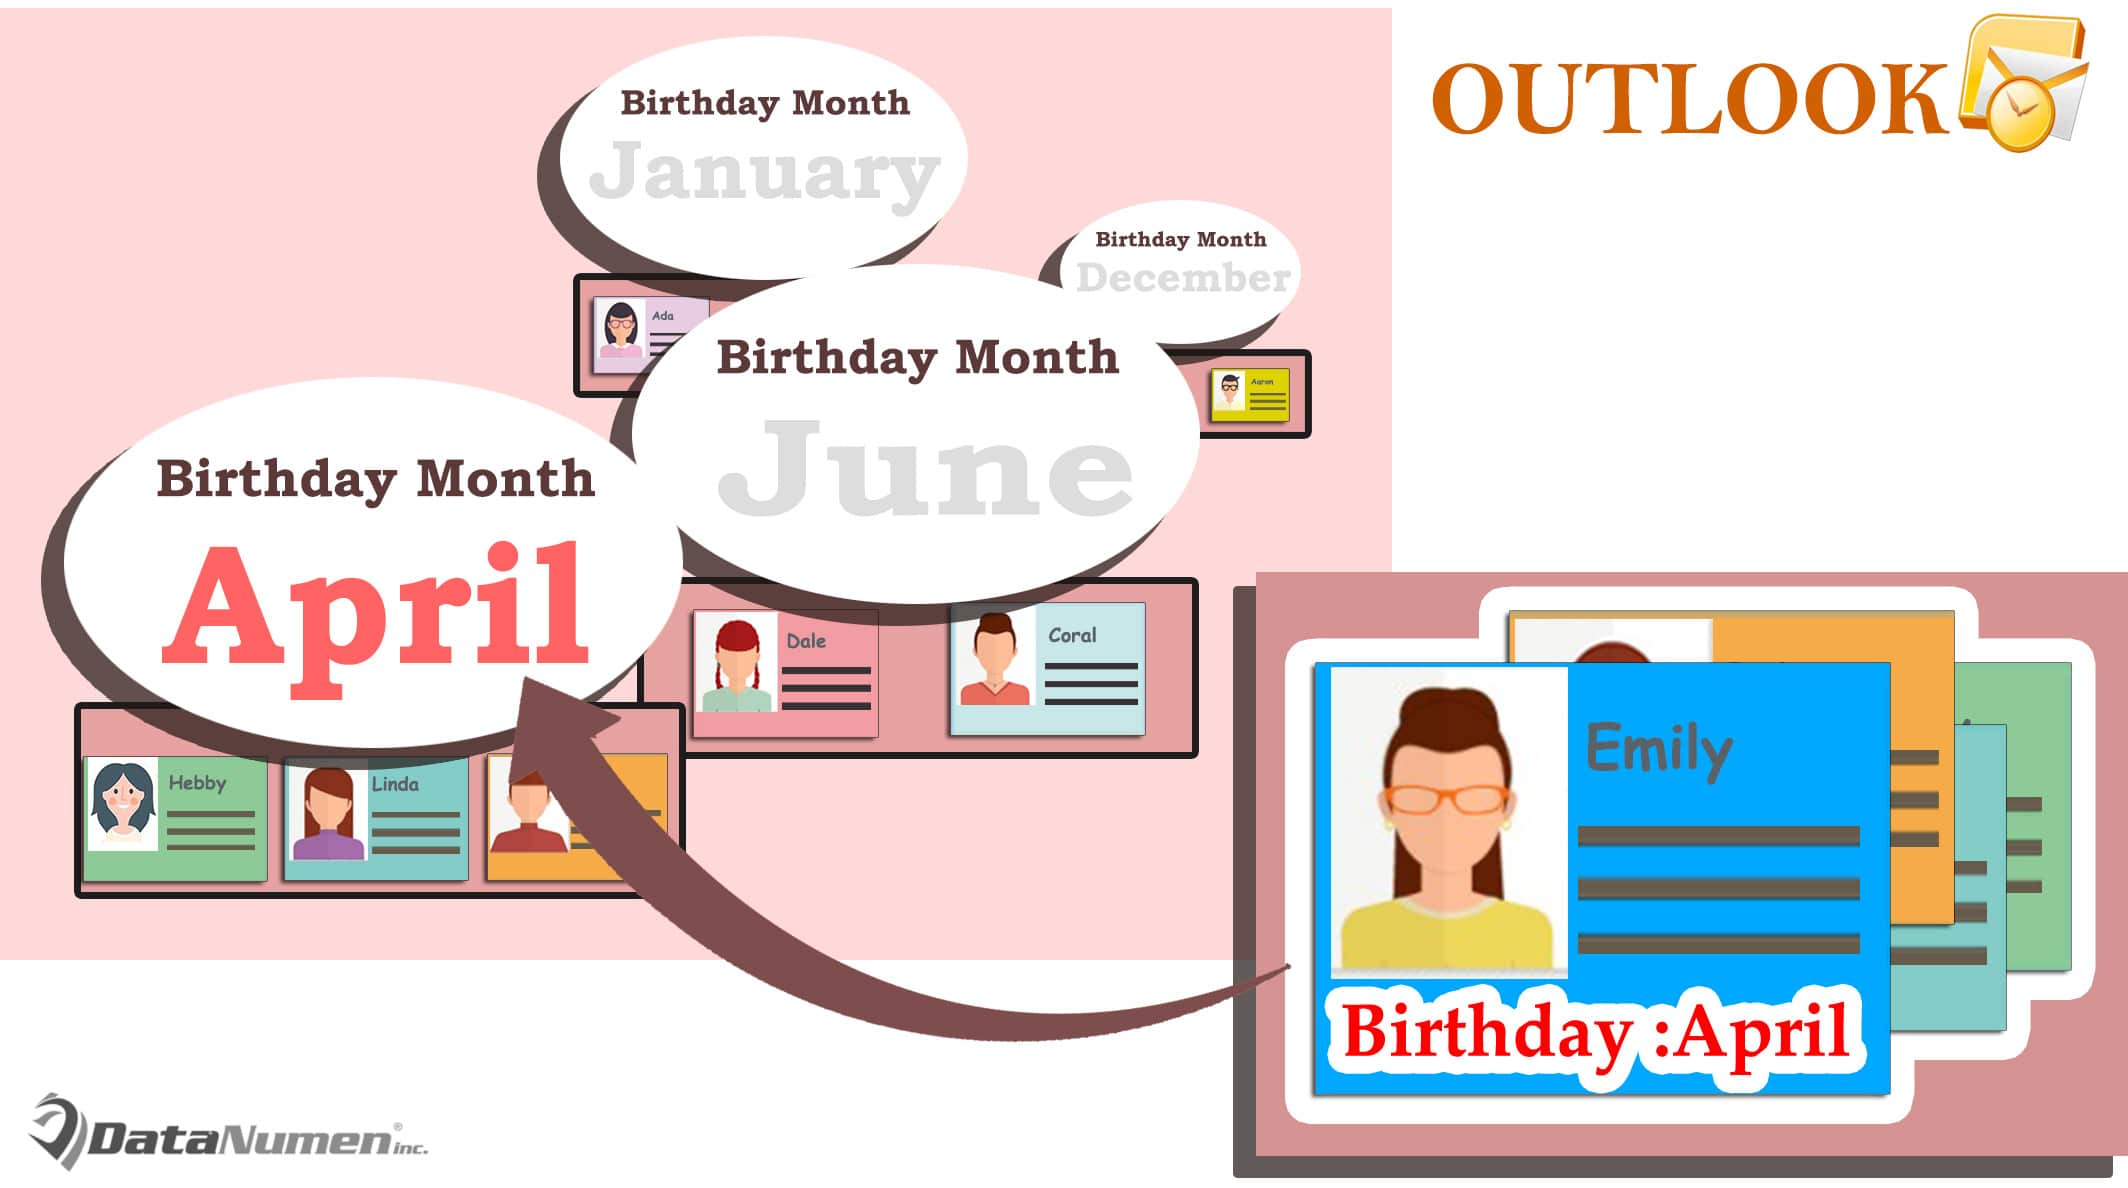 How to Quickly Group Outlook Contacts by Birthday Month in List View